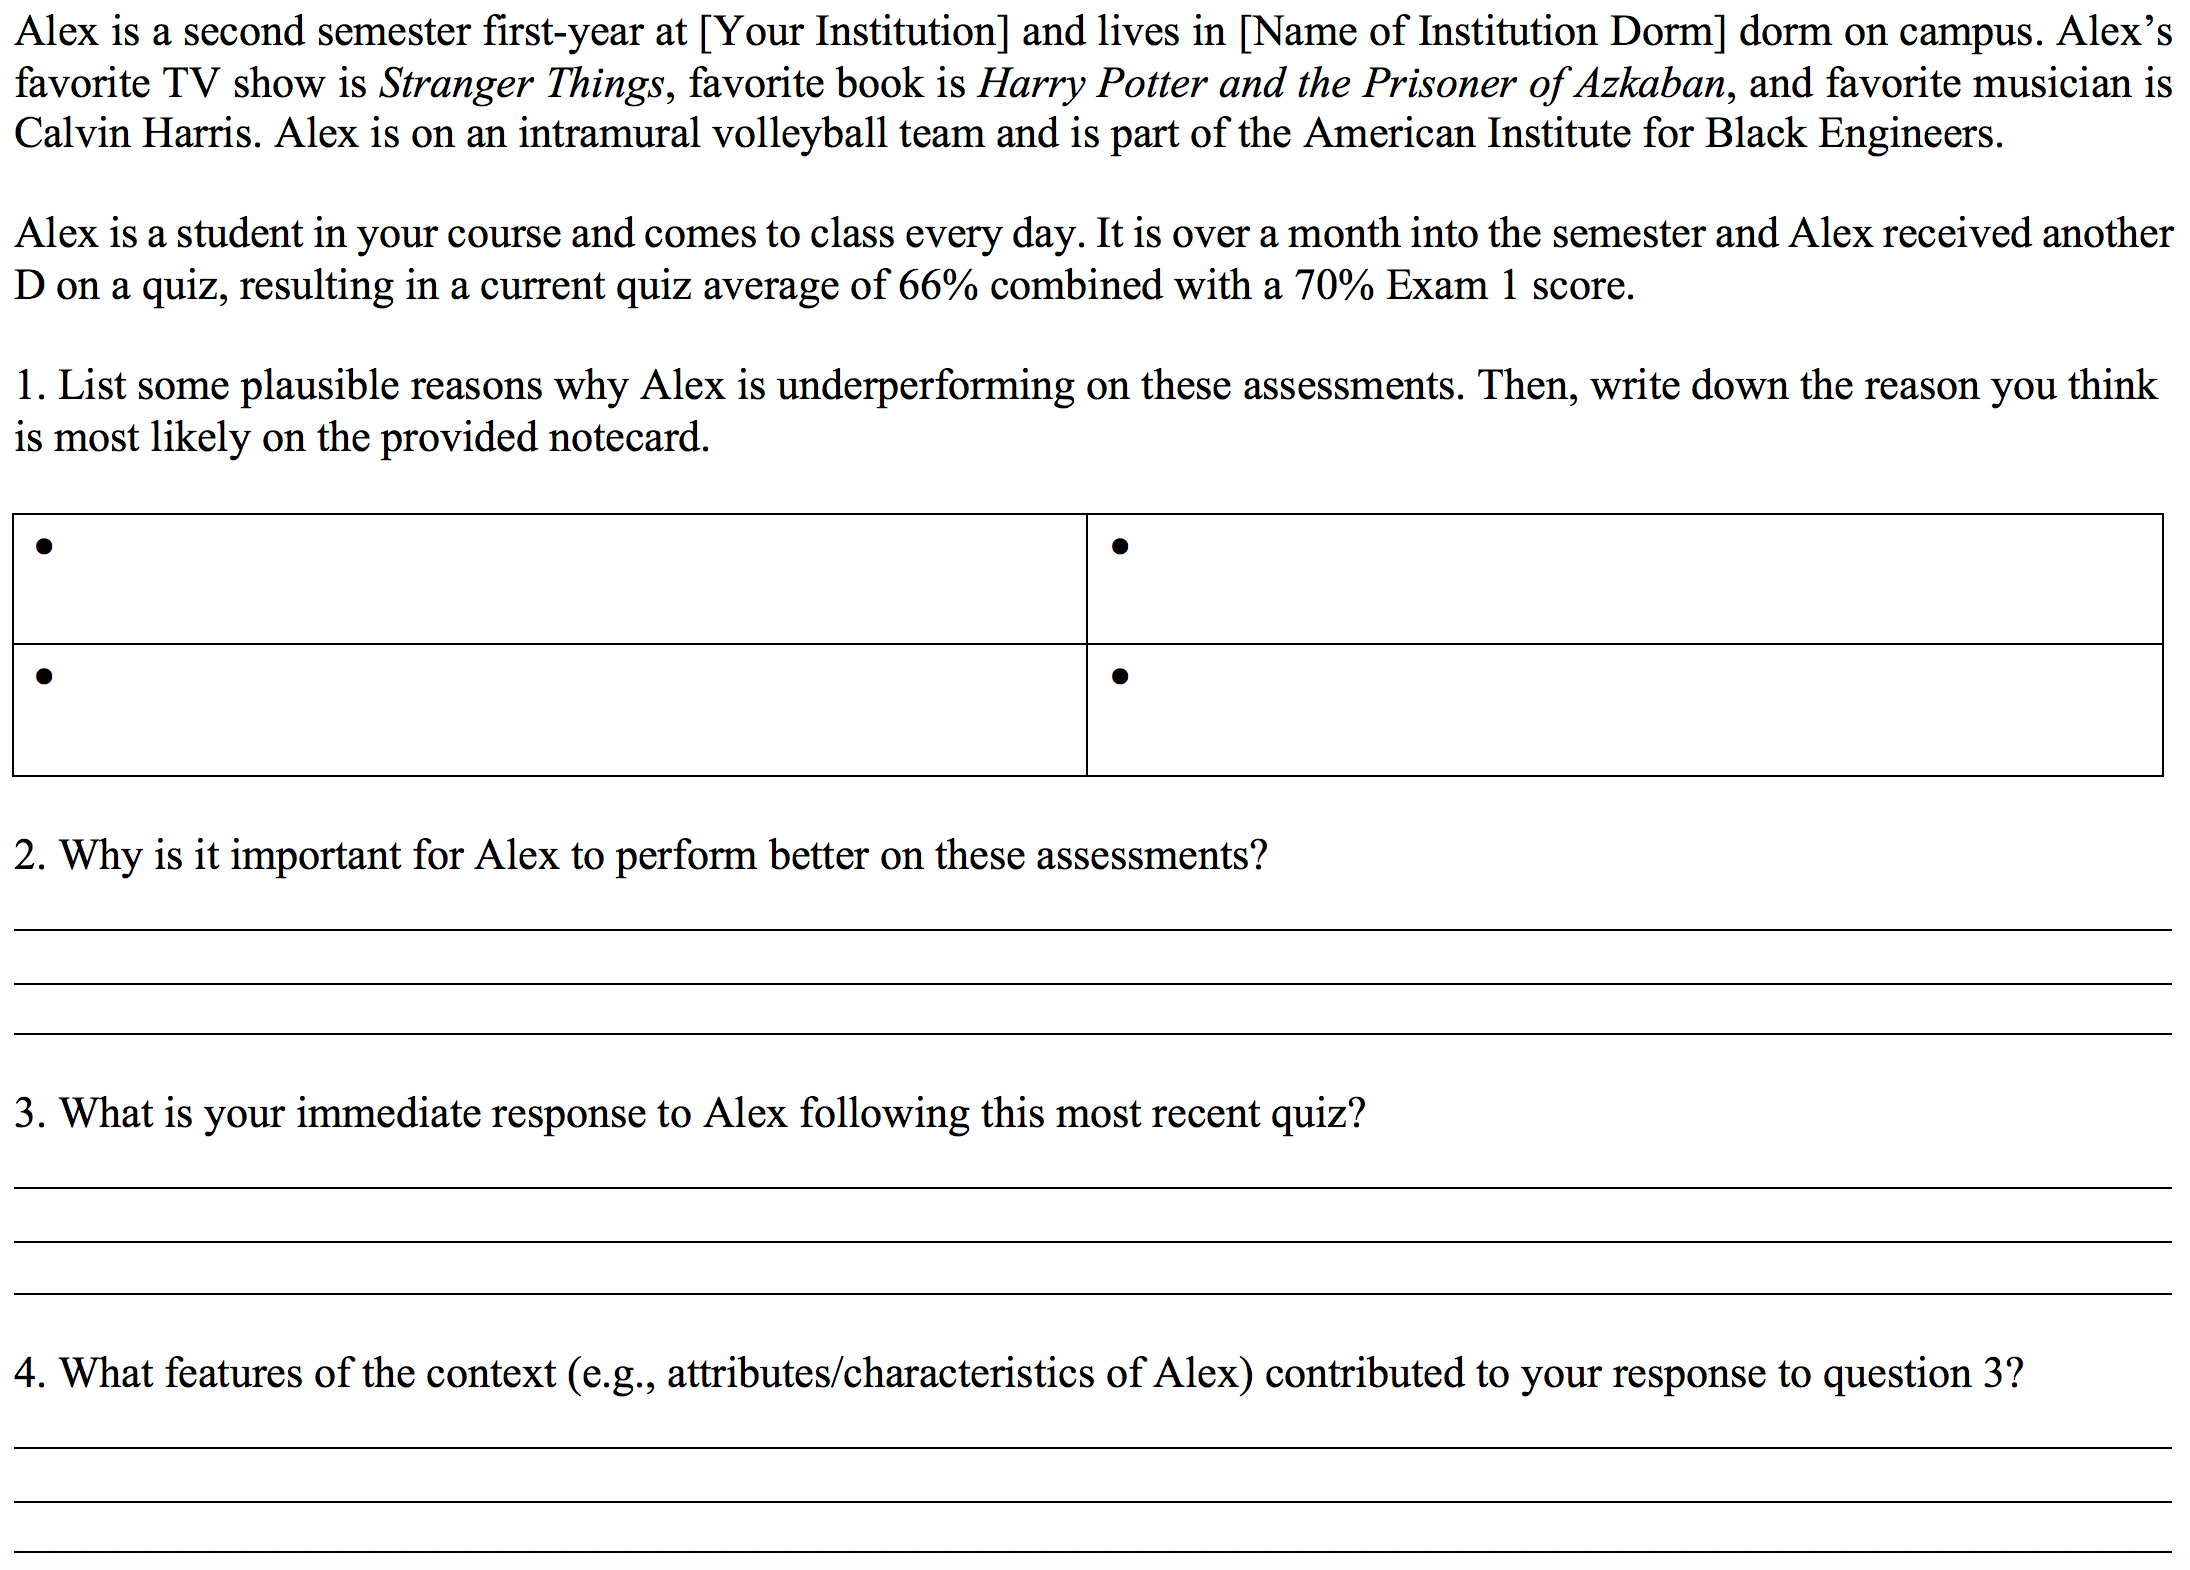 Figure 1. Sample Part One worksheet featuring the demographic details of Alex (including the unique marker of being in the American Institute for Black Engineers), the teaching scenario, and the list of questions participants should reflect on.